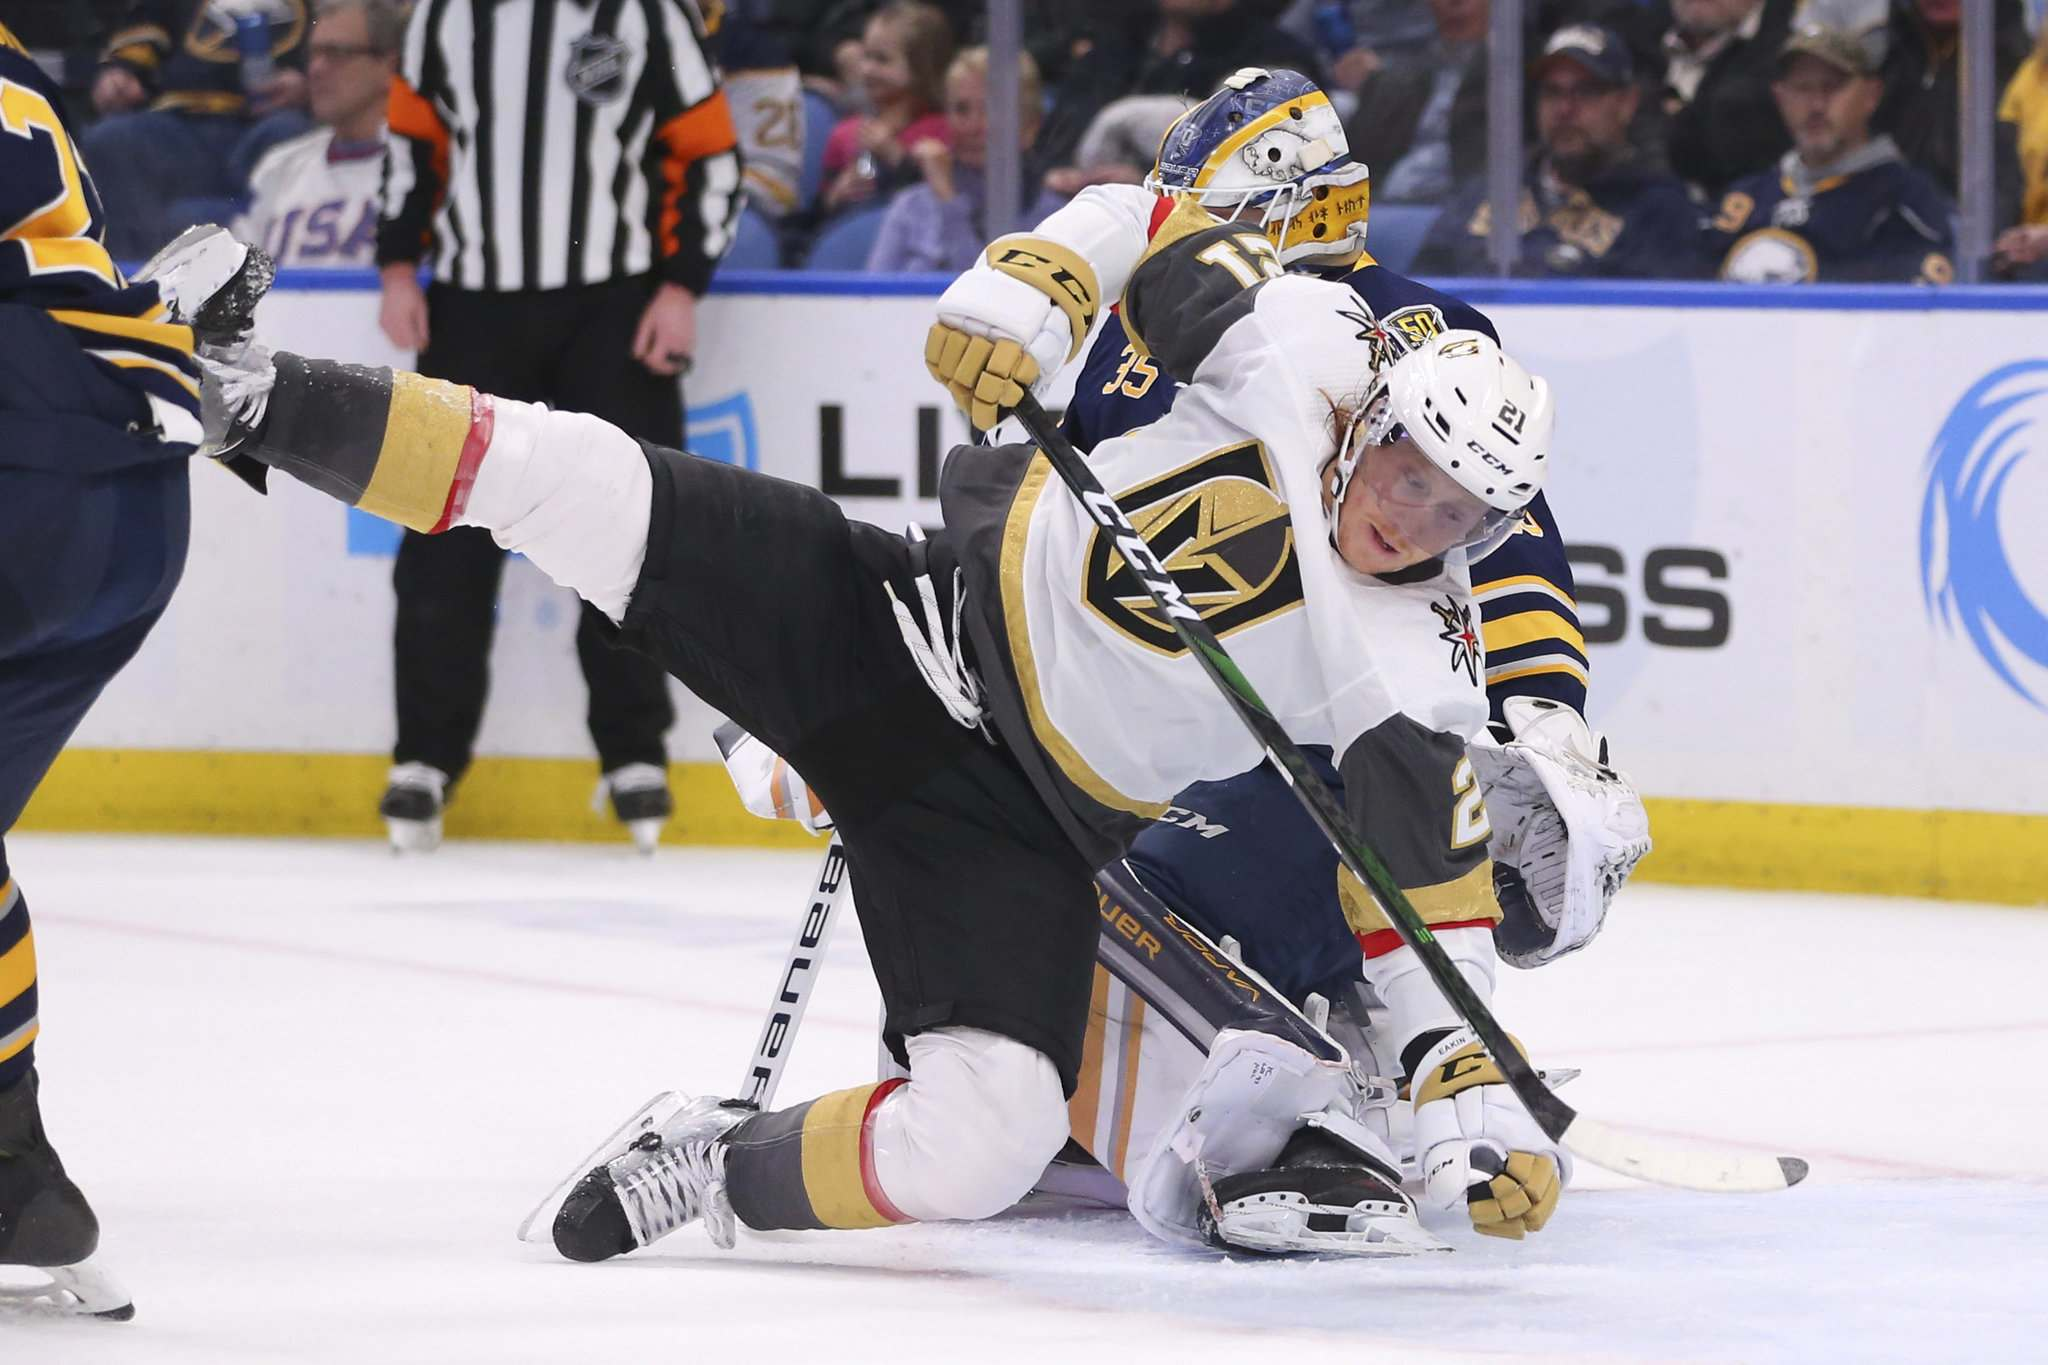 (AP Photo/Jeffrey T. Barnes)</p><p>Former Vegas Golden Knights forward Cody Eakin brings a level of compete in his game that the Jets are looking for.</p>